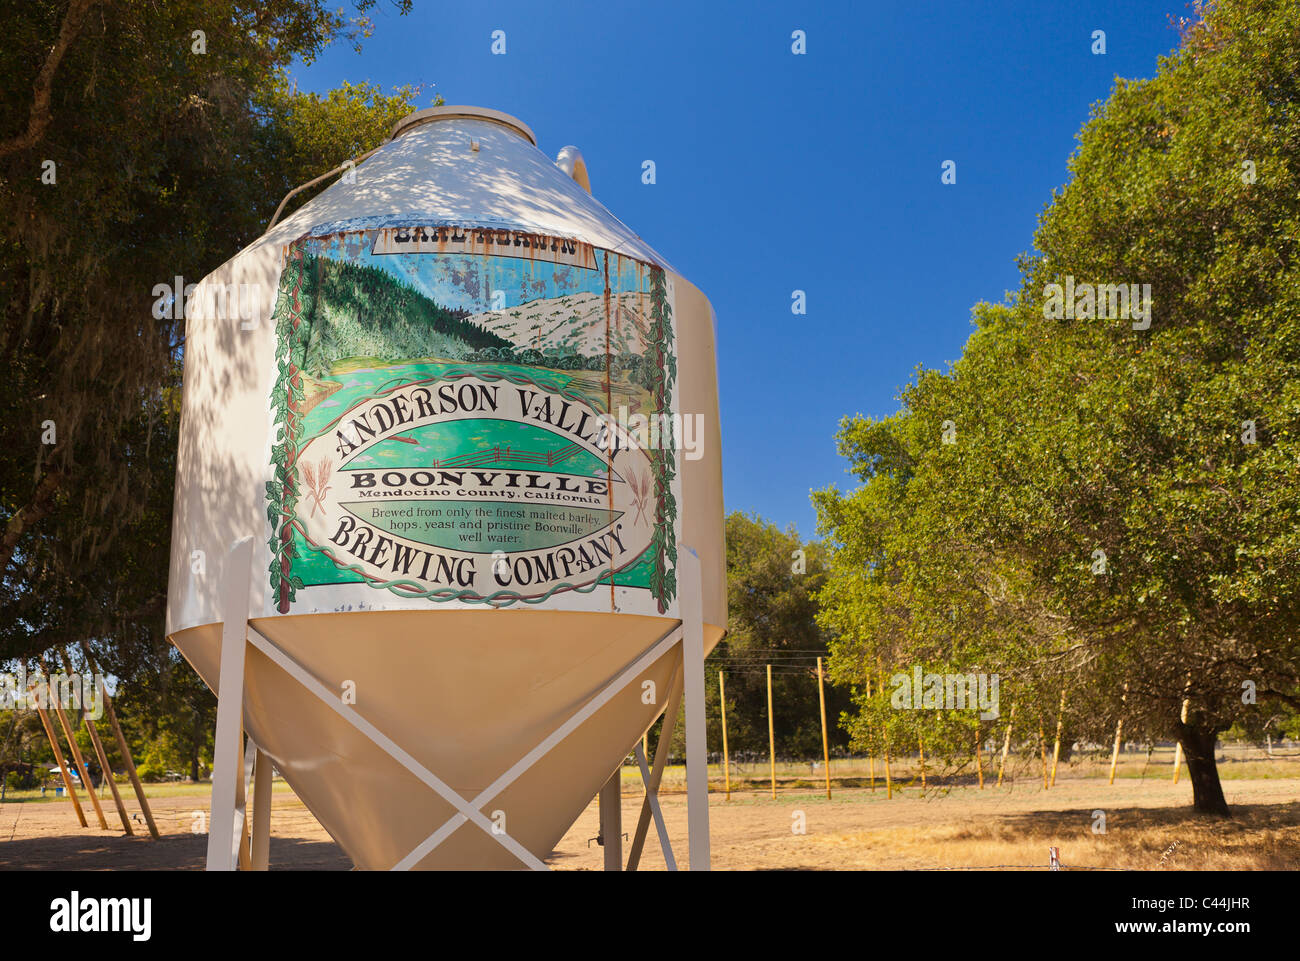 BOONVILLE, CALIFORNIA, USA - Anderson Valley Brewing Company, sign on old fermentation tank, in Mendocino County. - Stock Image